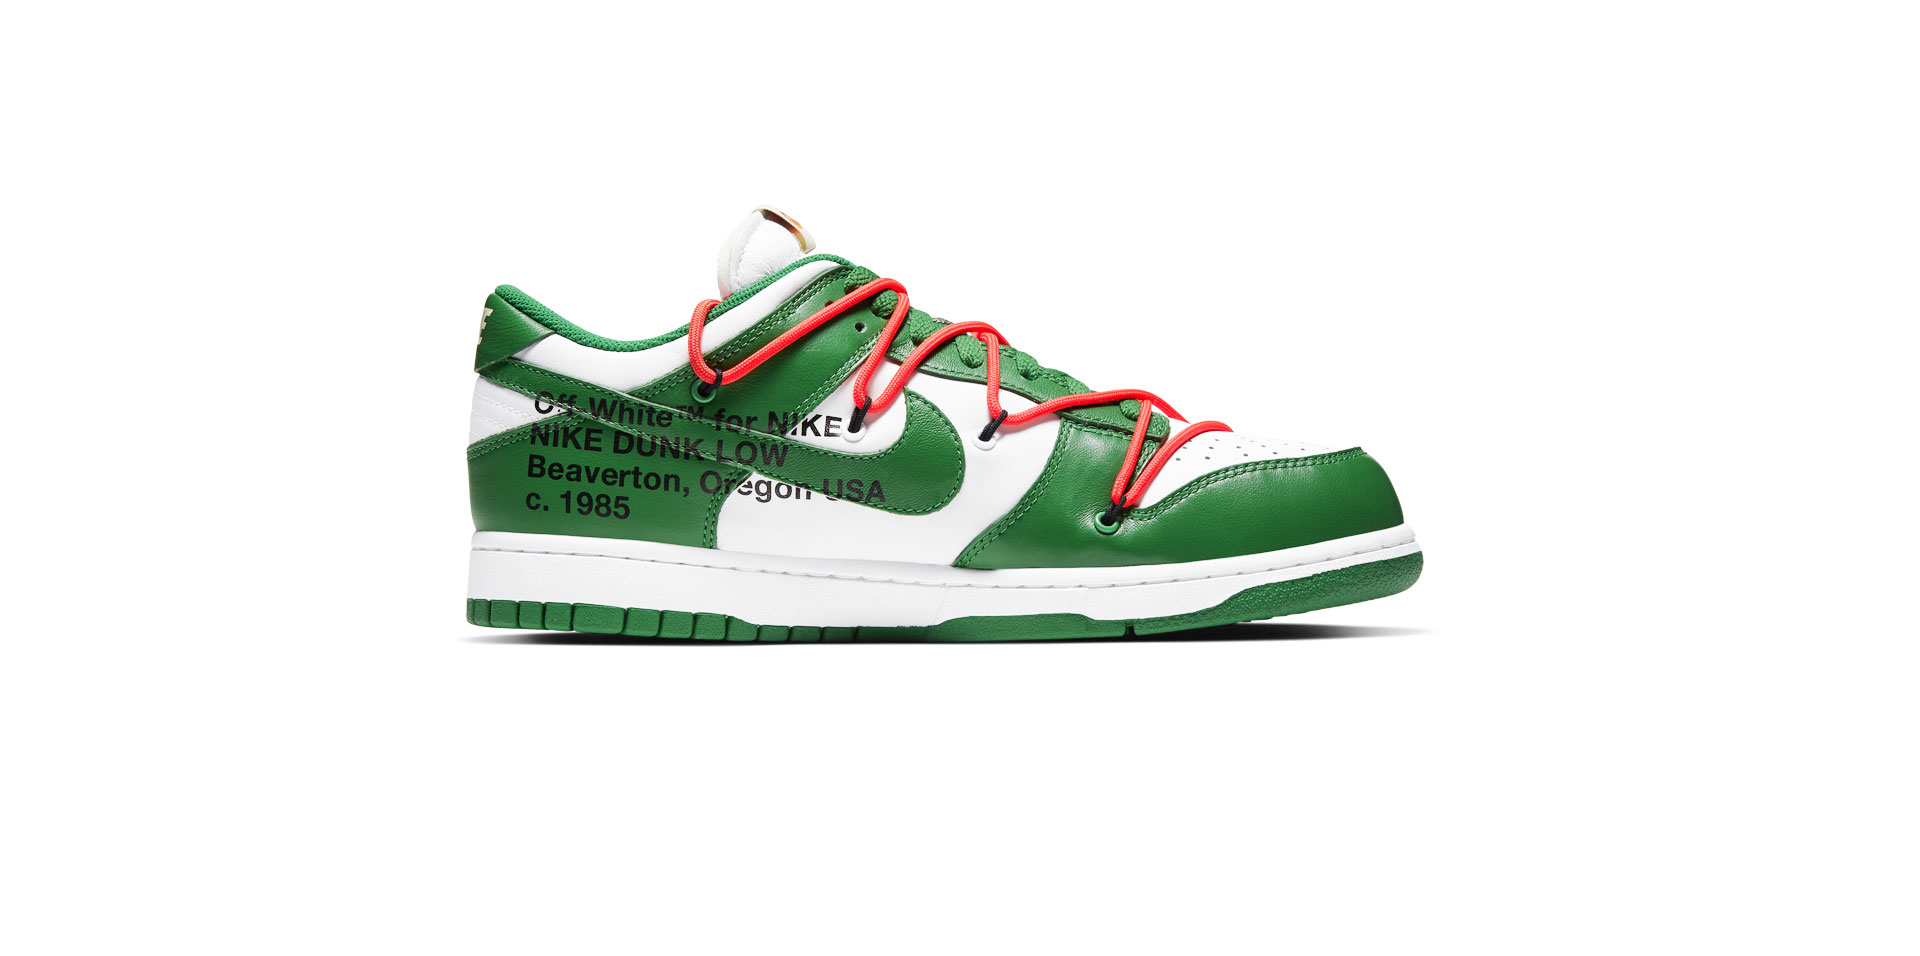 NIKE DUNK LOW LEATHER X OFF-WHITE – WHITE/PINE GREEN-PINE GREEN